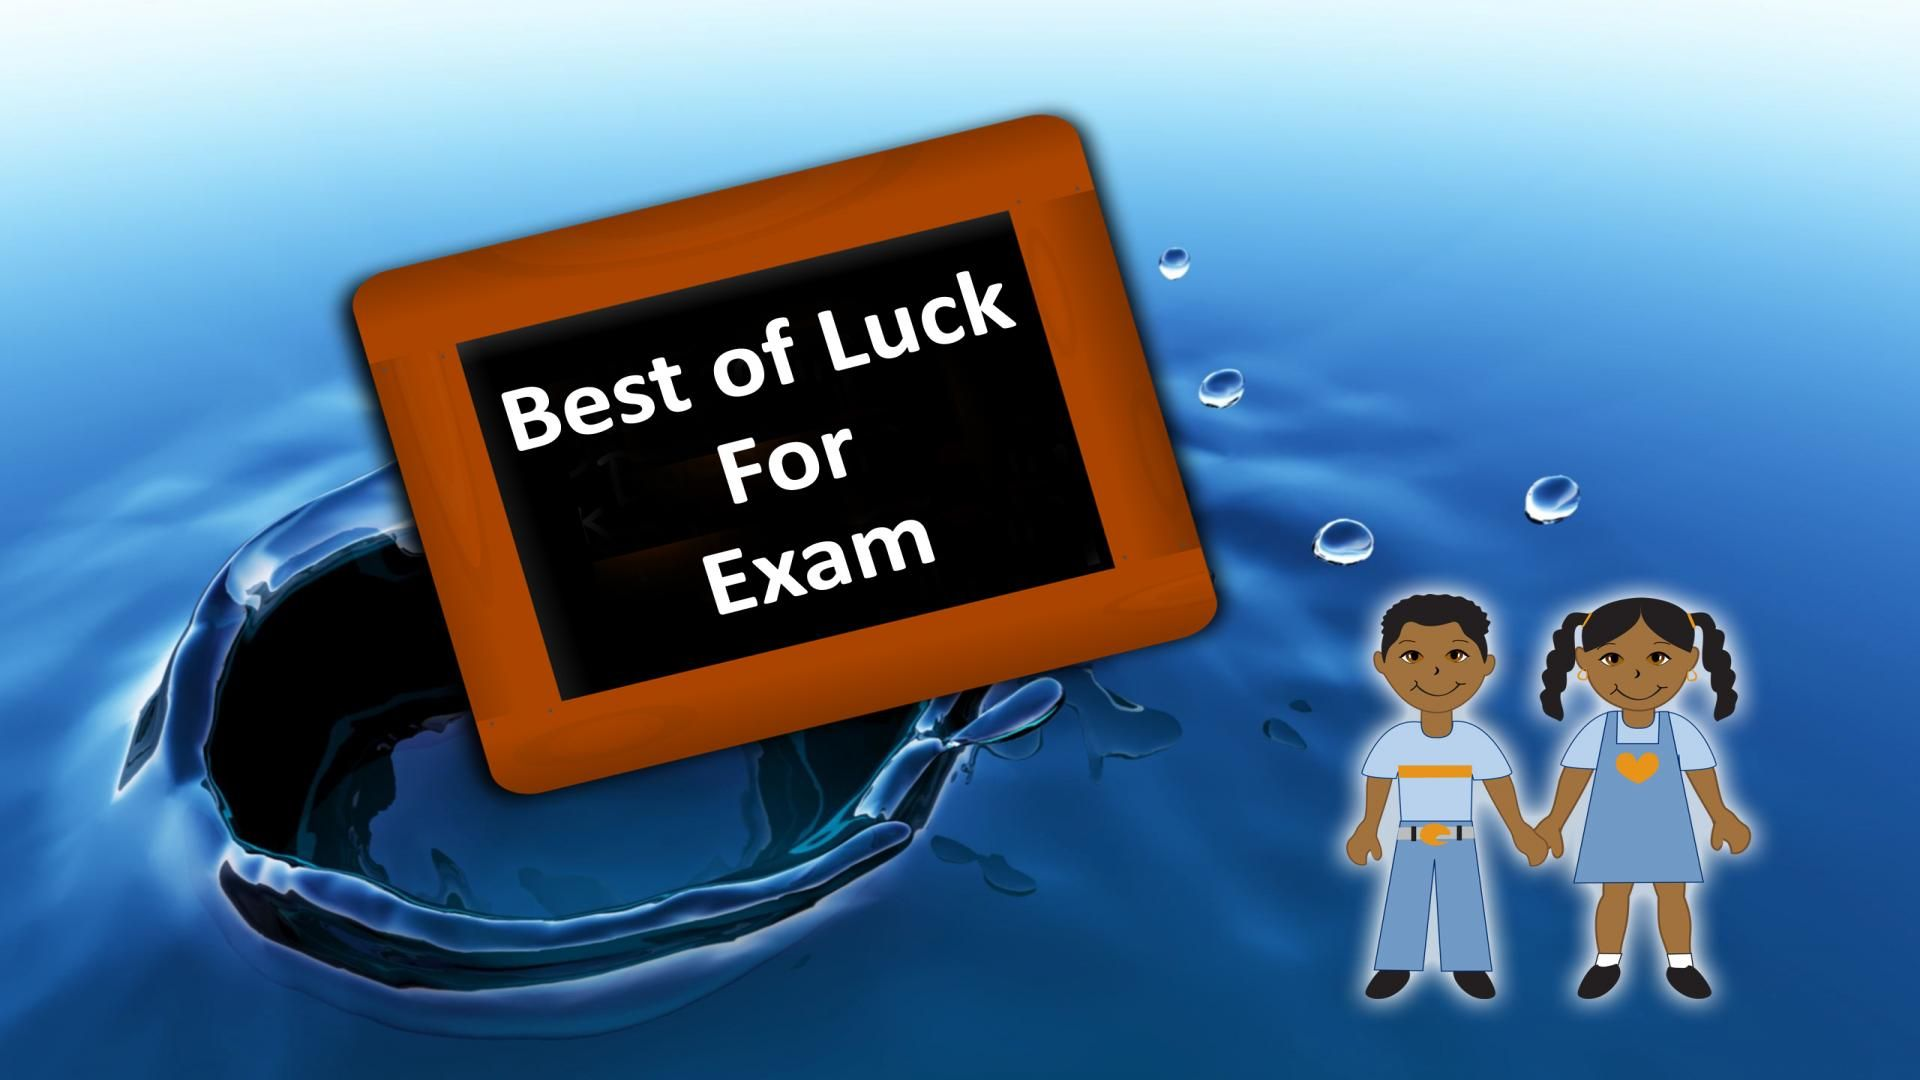 Best Of Luck For Exam Hd Wallpapers Hd Wallpapers Sayings